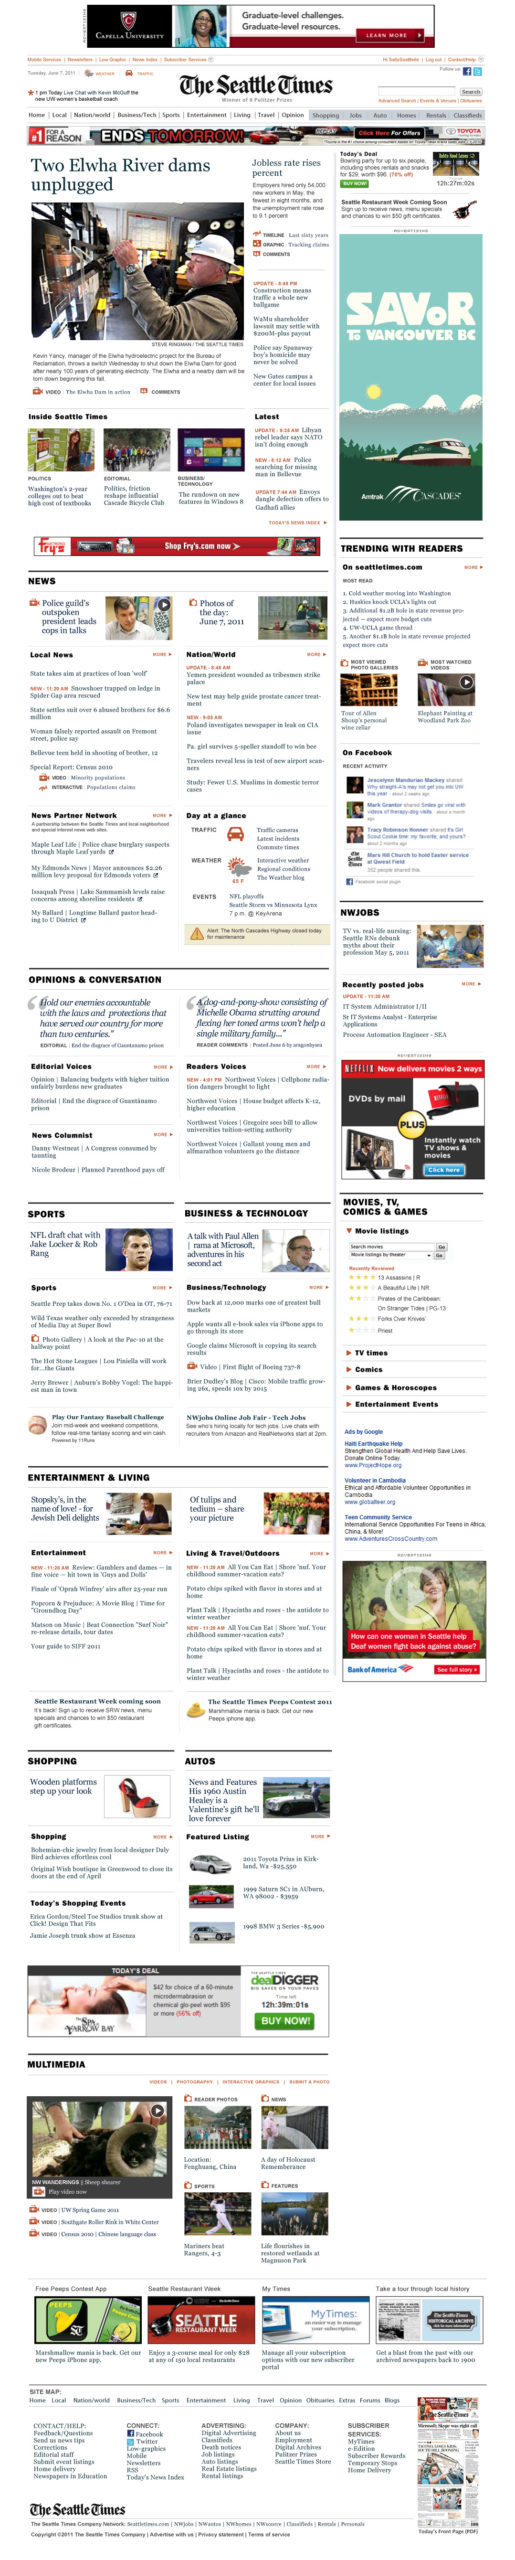 The Seattle Times home page in 2011 AFTER redesign